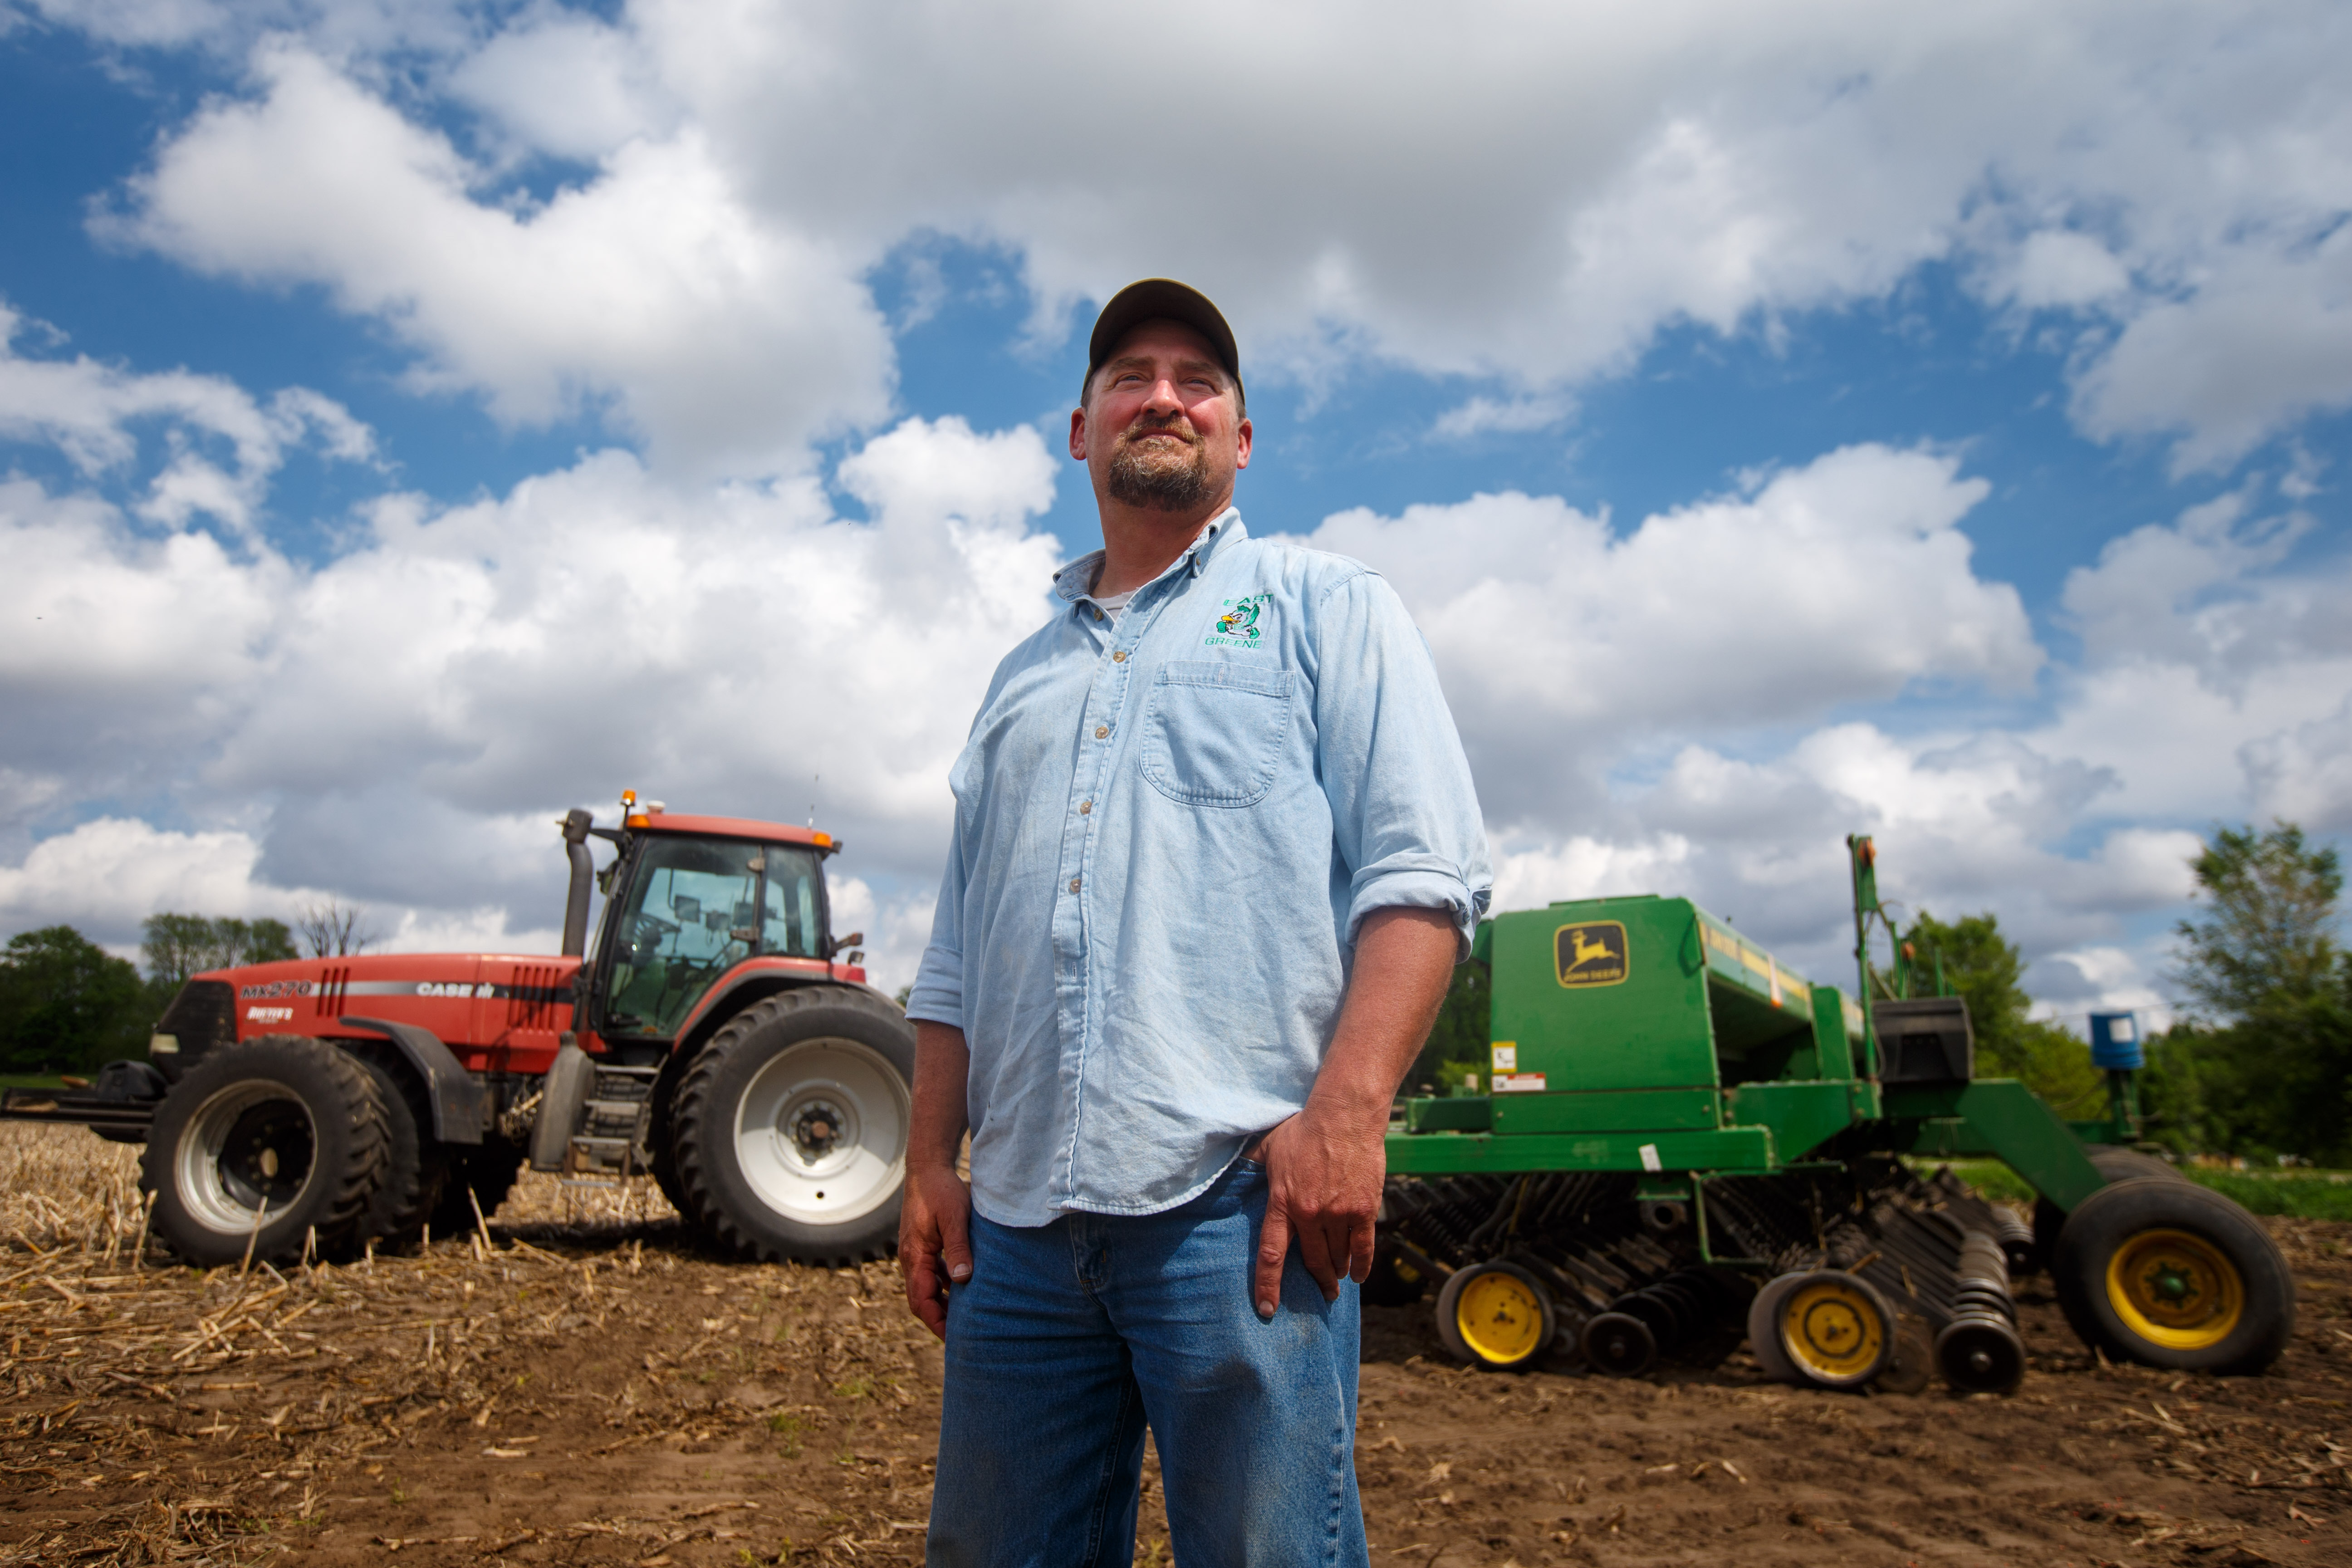 Trump's trade war with China puts farm vote at risk